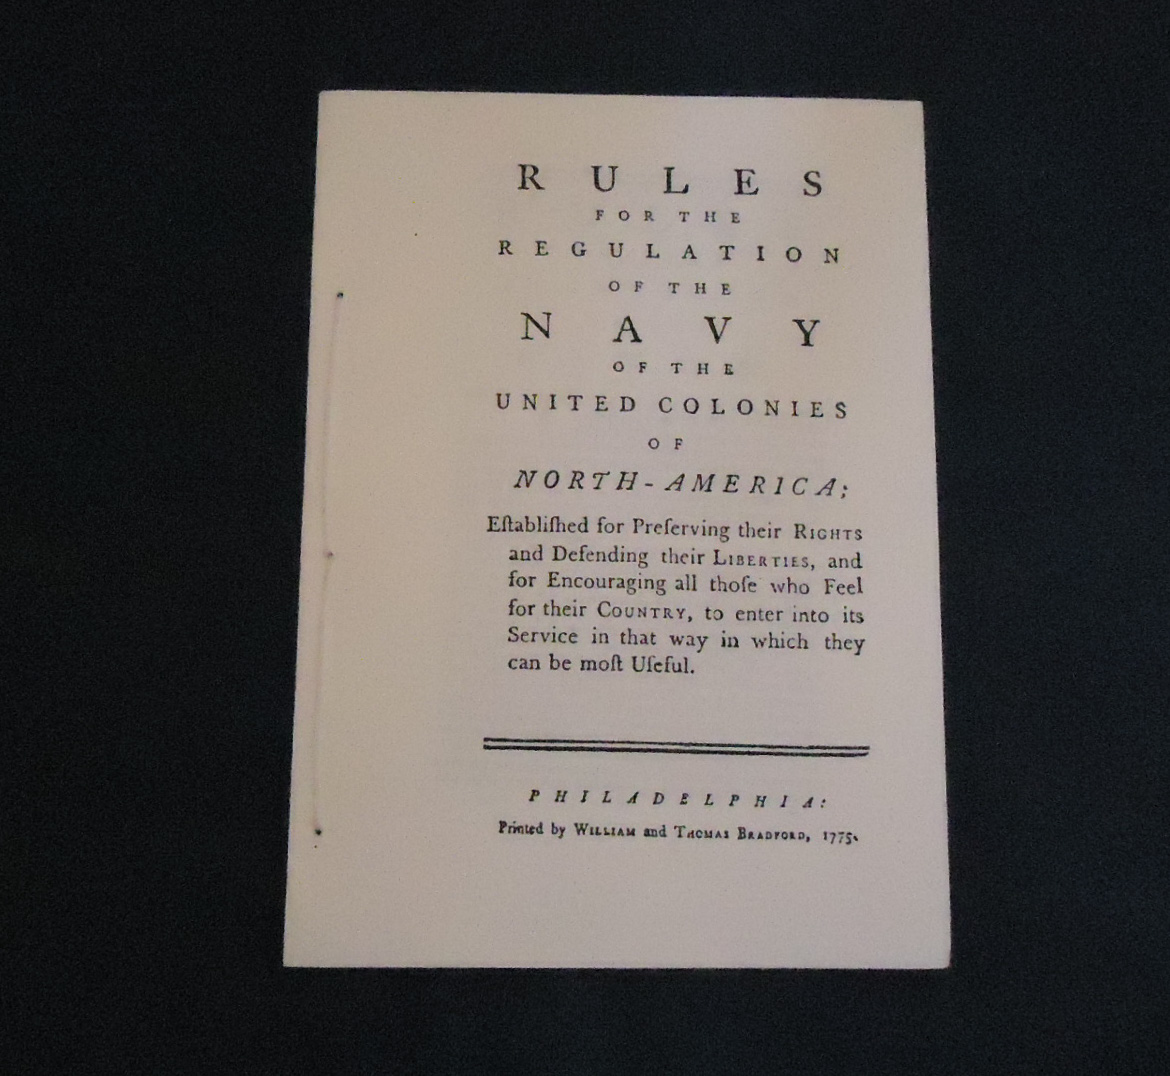 American Naval Articles of War - 1775